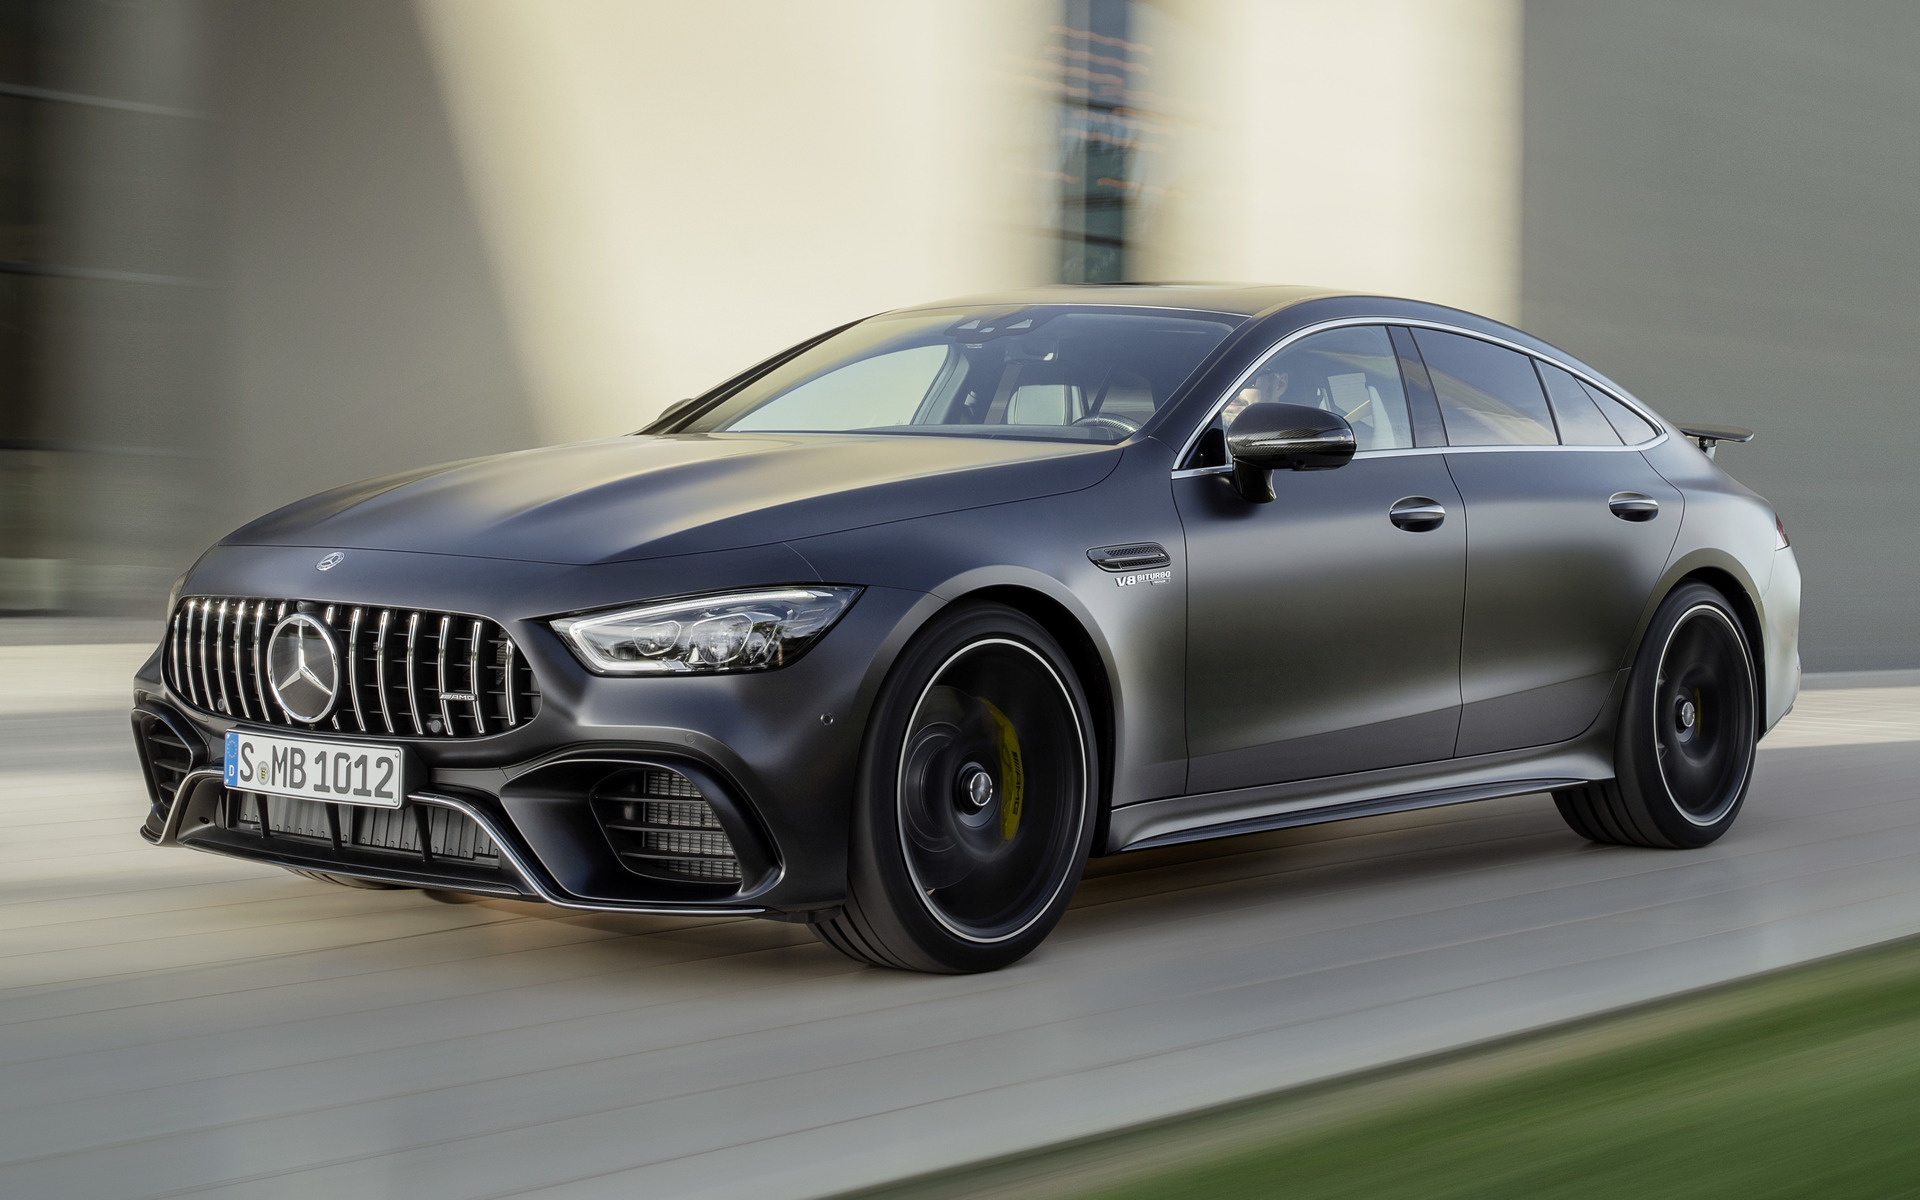 mercedes amg gt 63 s 4 door 2018 wallpapers and hd images car pixel. Black Bedroom Furniture Sets. Home Design Ideas